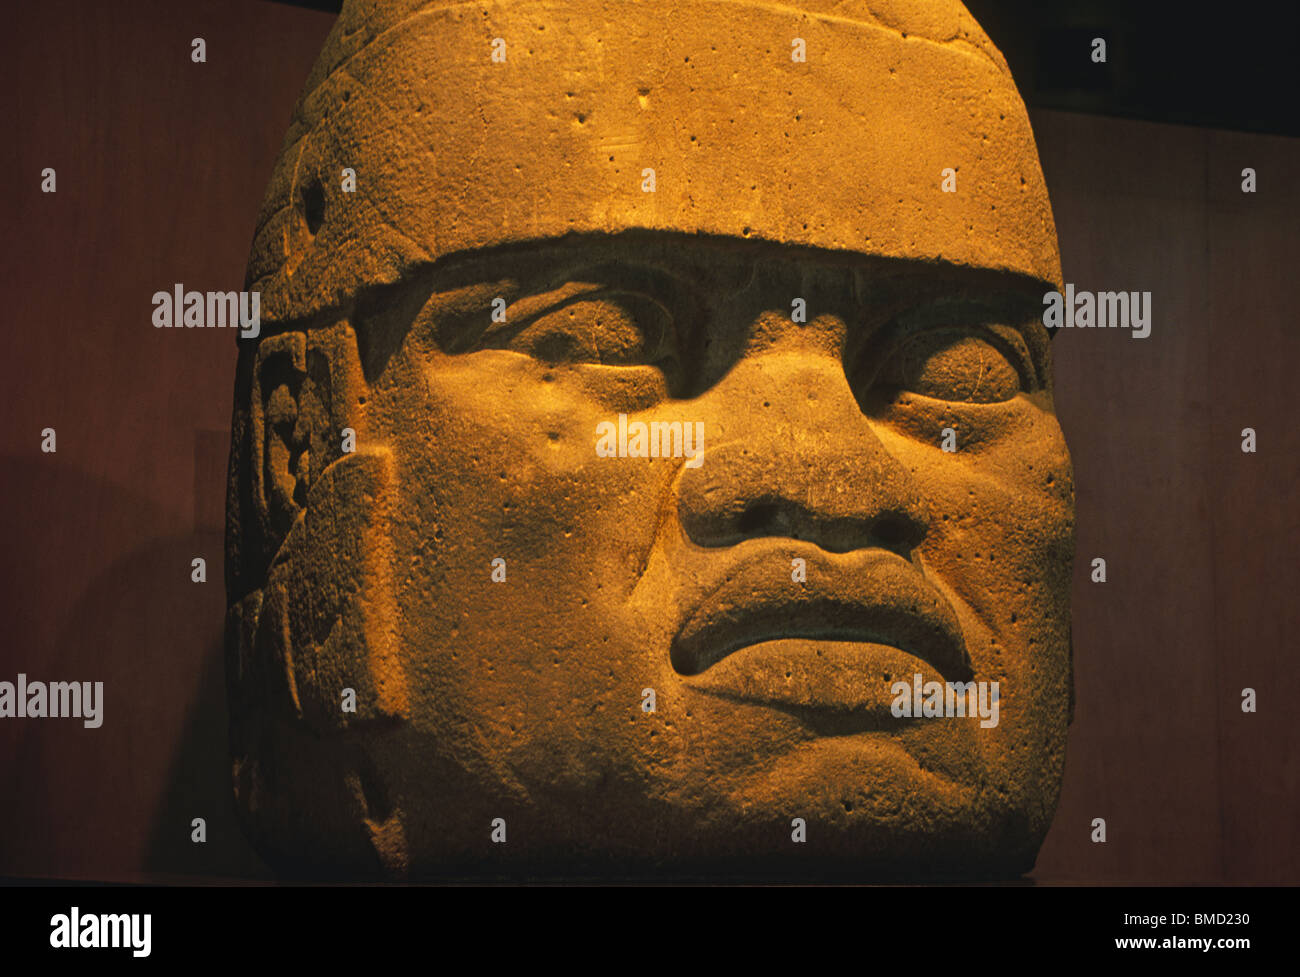 The Olmec Heads, from precolumbian mesoamerica on display at the National Museum of Anthropology in Mexico City, - Stock Image